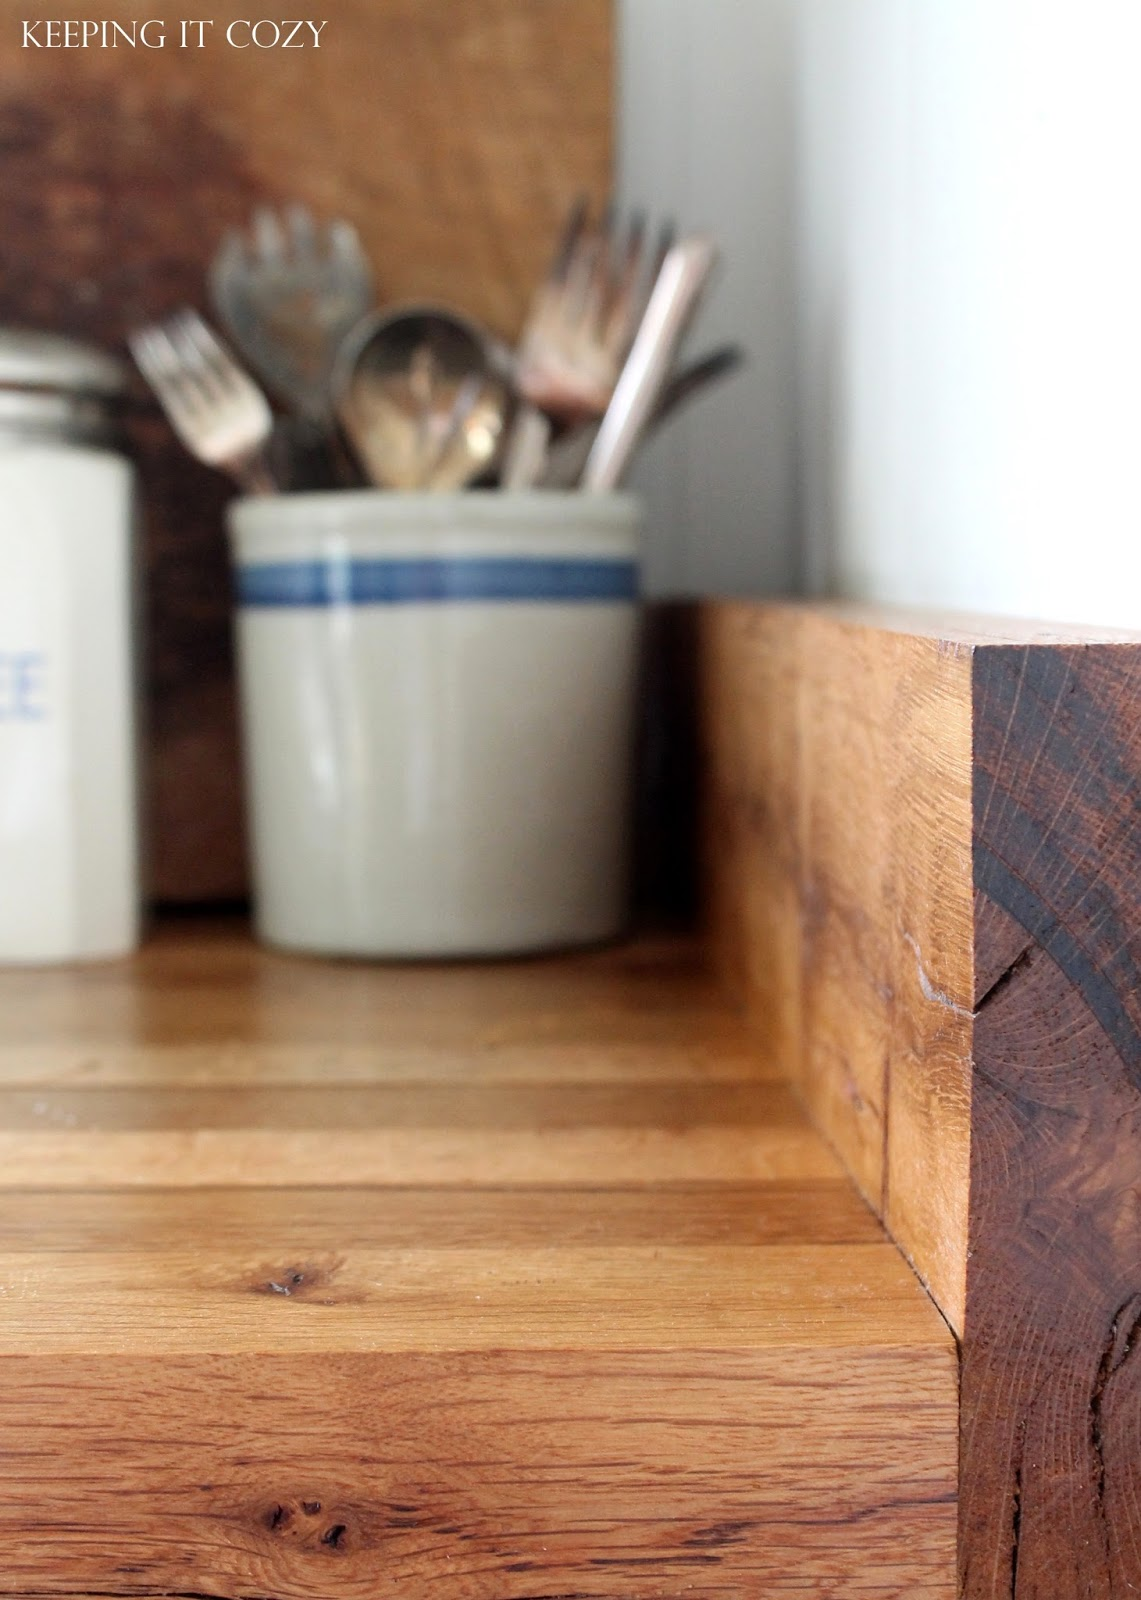 Butcher Block Countertops Care Keeping It Cozy All About Butcher Block Countertops